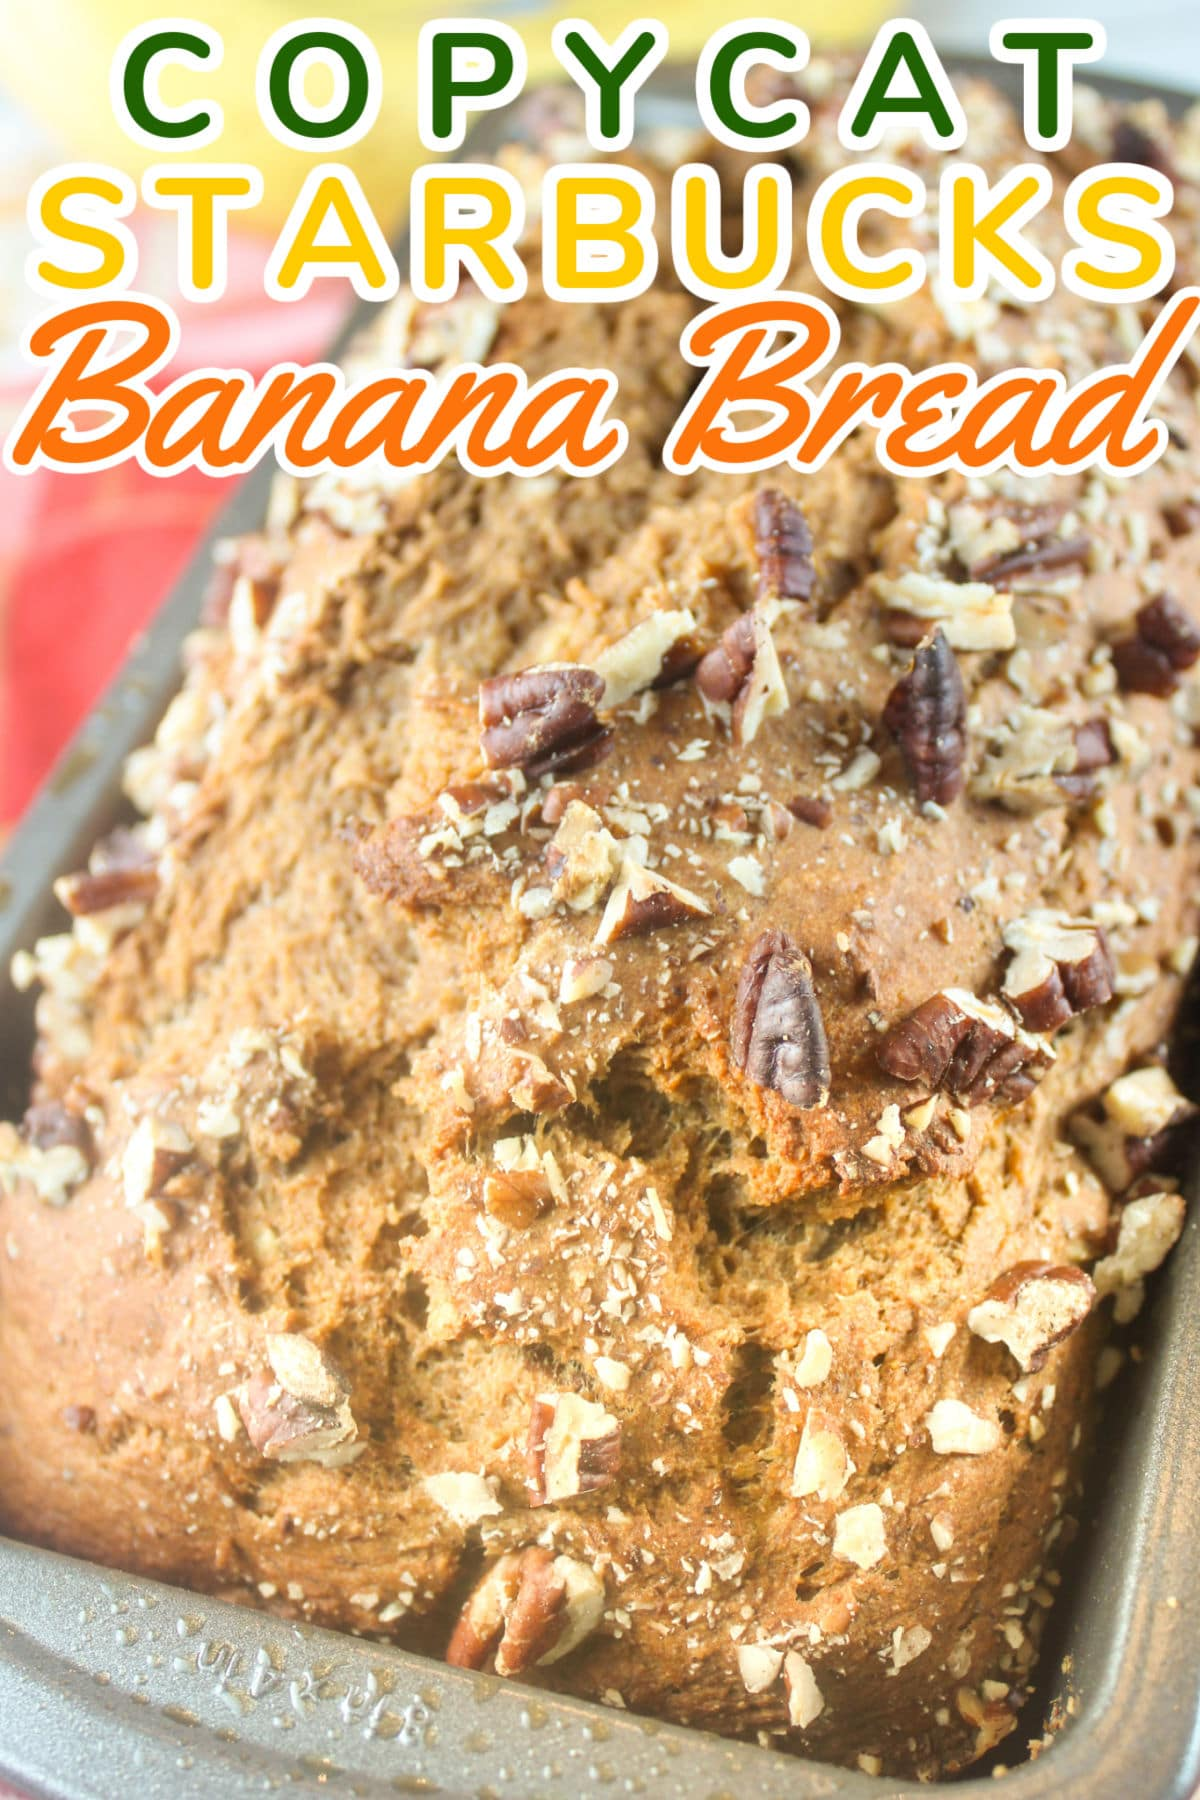 You're going to be shocked when you bite into this Copycat Starbucks Banana Bread and realize it's pretty healthy too! That's right - only 4 Weight Watchers points (all plans) - and I've got Air Fryer instructions as well!  via @foodhussy